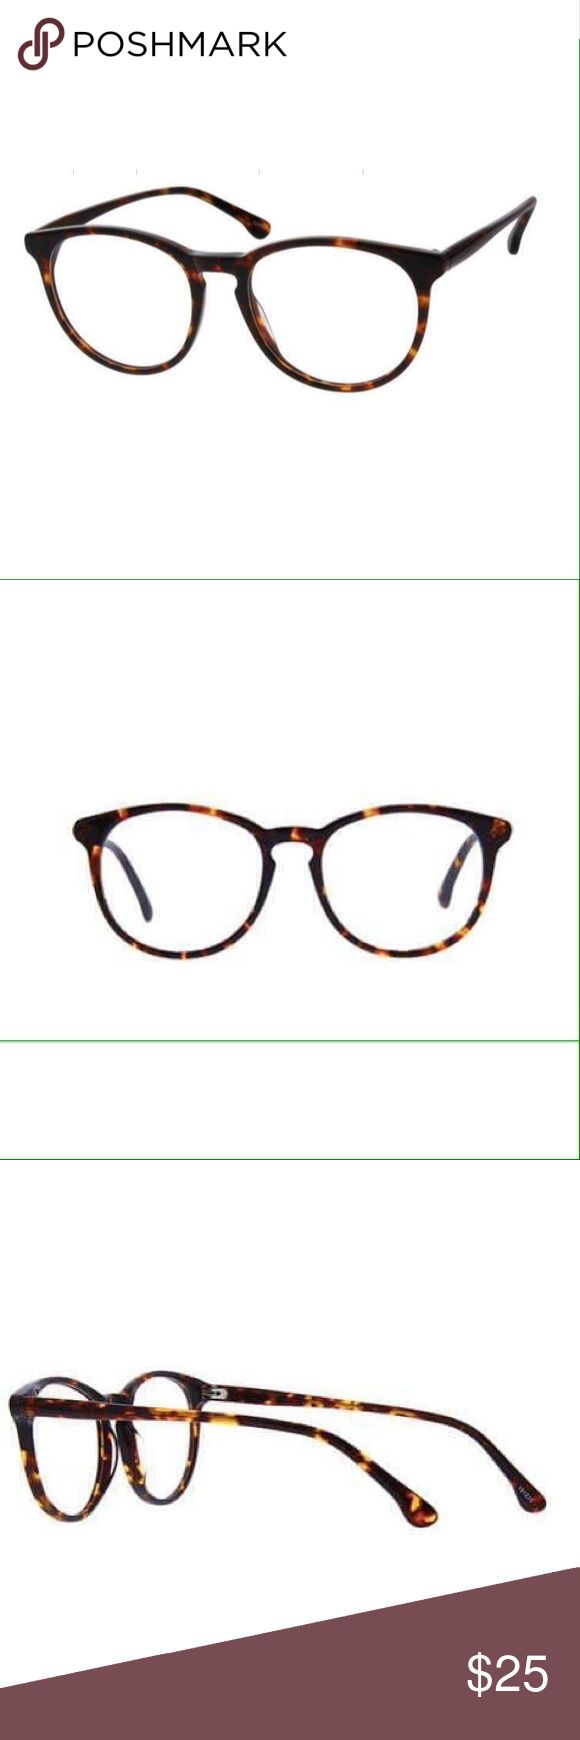 1000+ images about Accessories on Pinterest | Eyeglasses